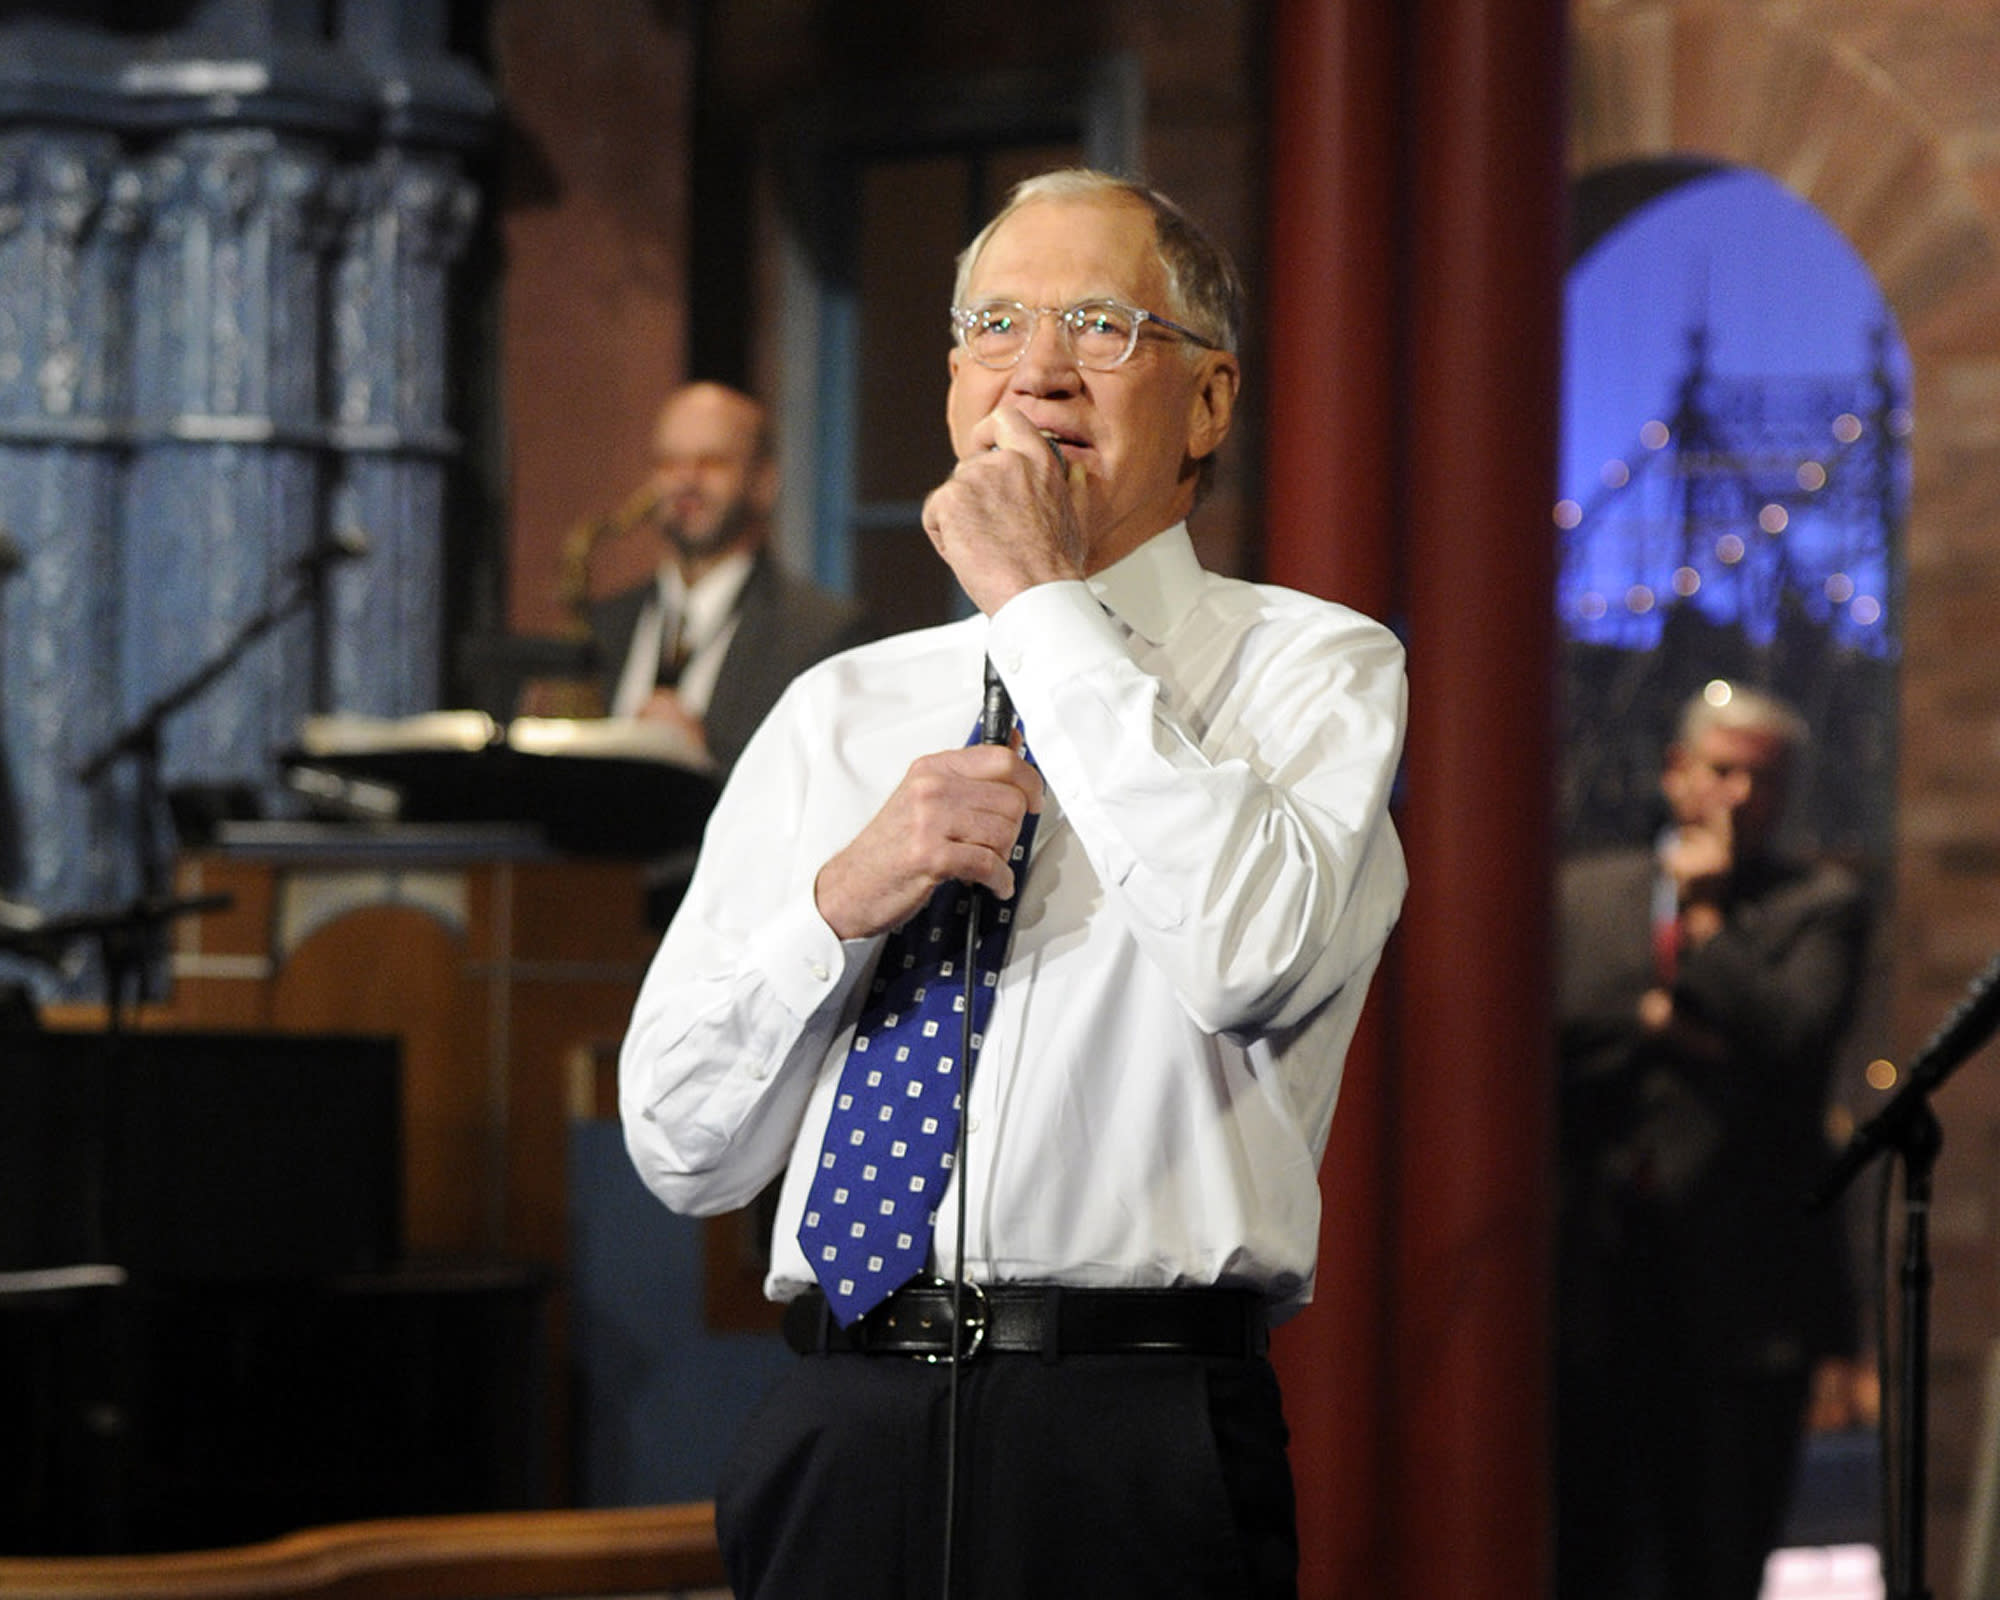 David Letterman signs off after 33 years and 6,028 shows